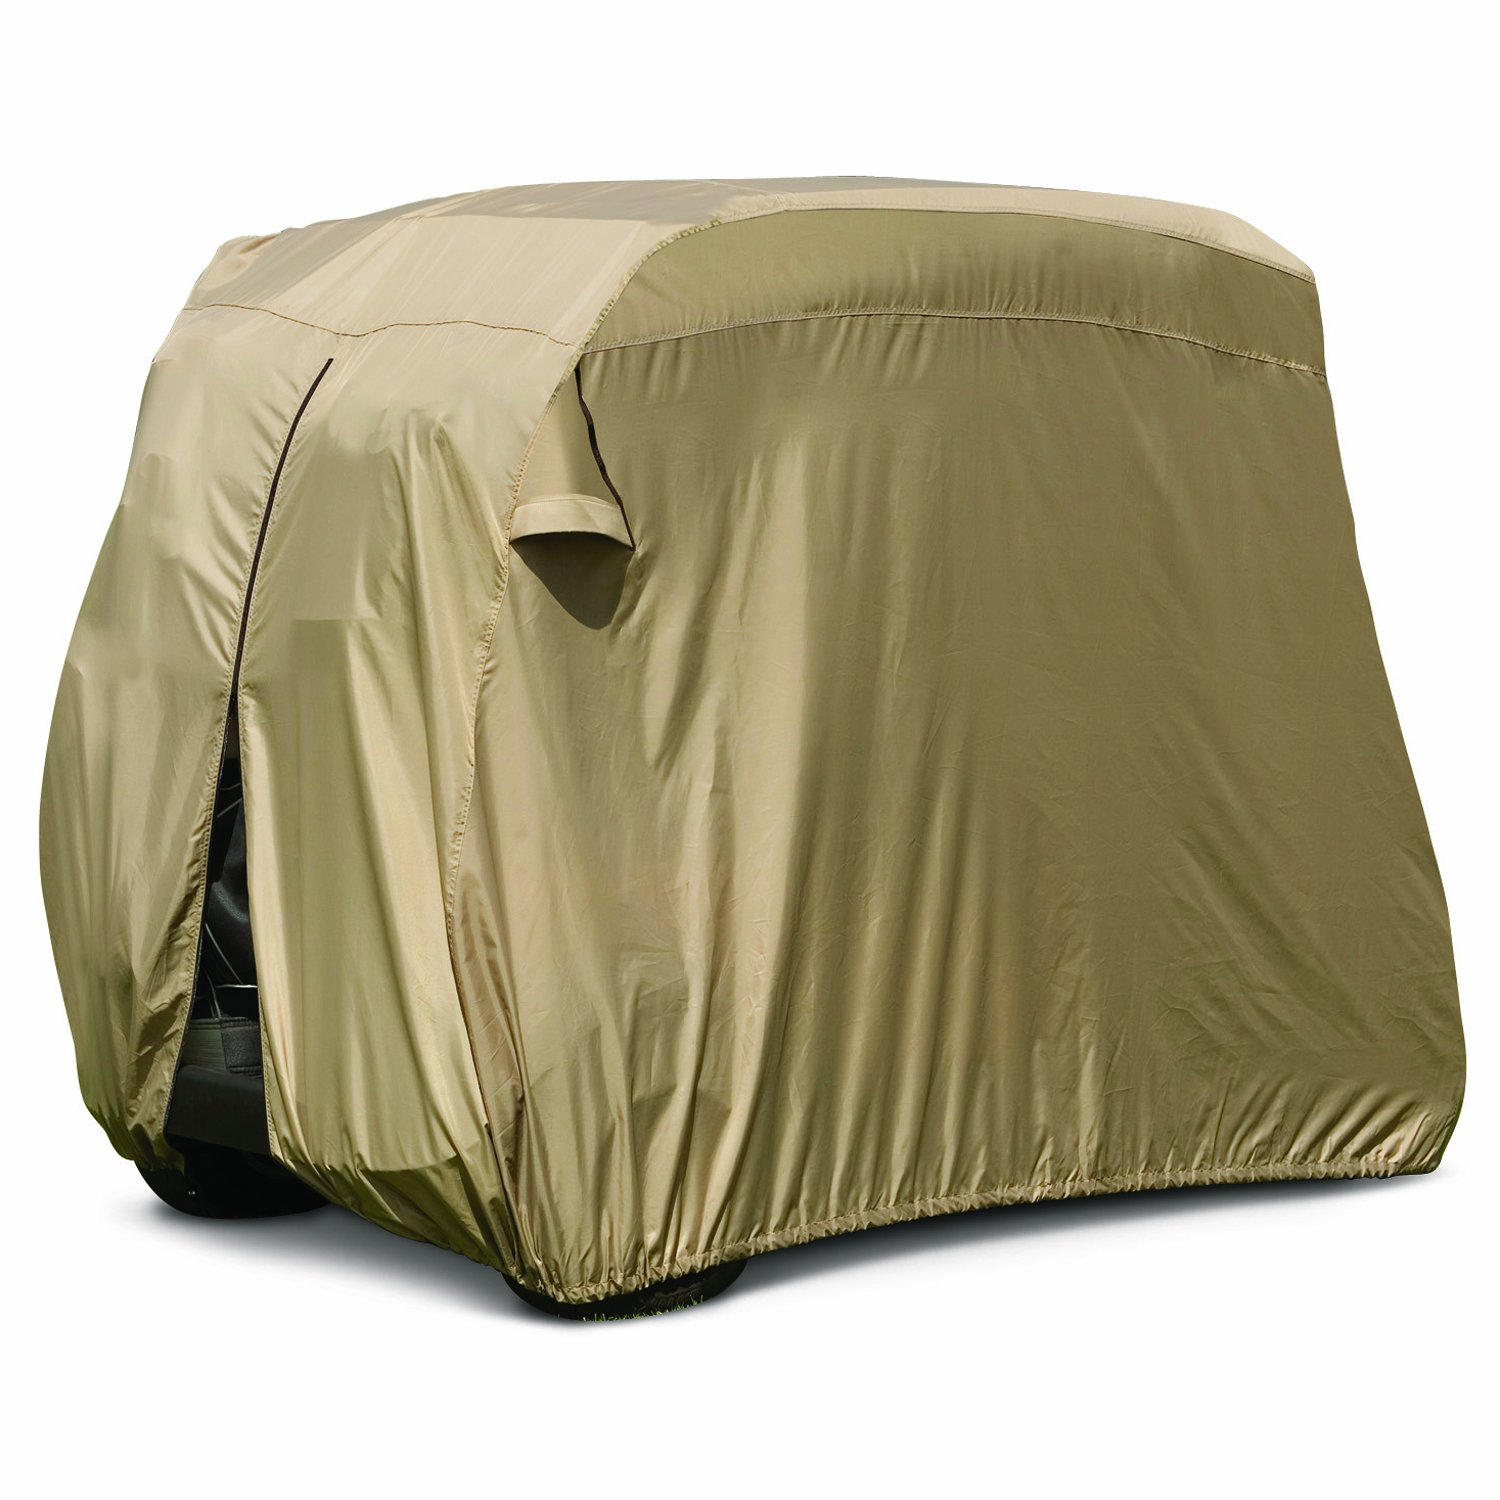 Club Car Golf Cart Cover Tan Accessories 48v Carryall Battery Wiring Diagram Sports Outdoors